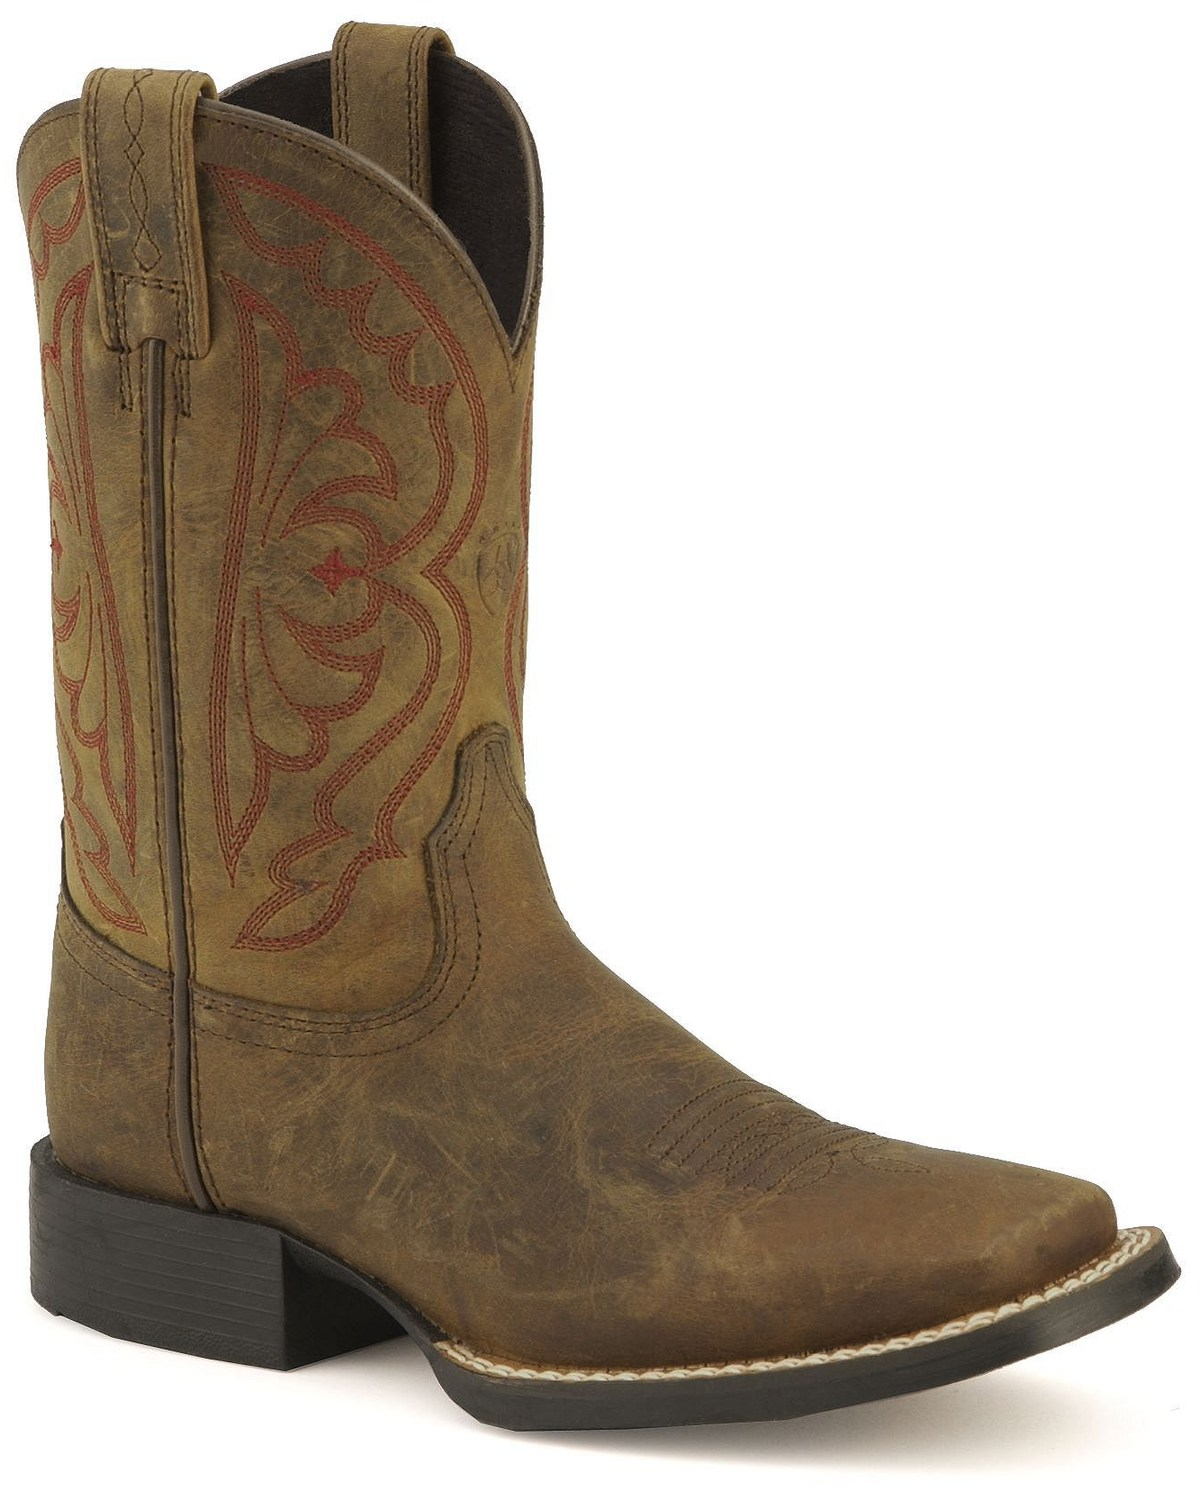 3180faba042 Ariat Boys' Quickdraw Cowboy Boots - Square Toe